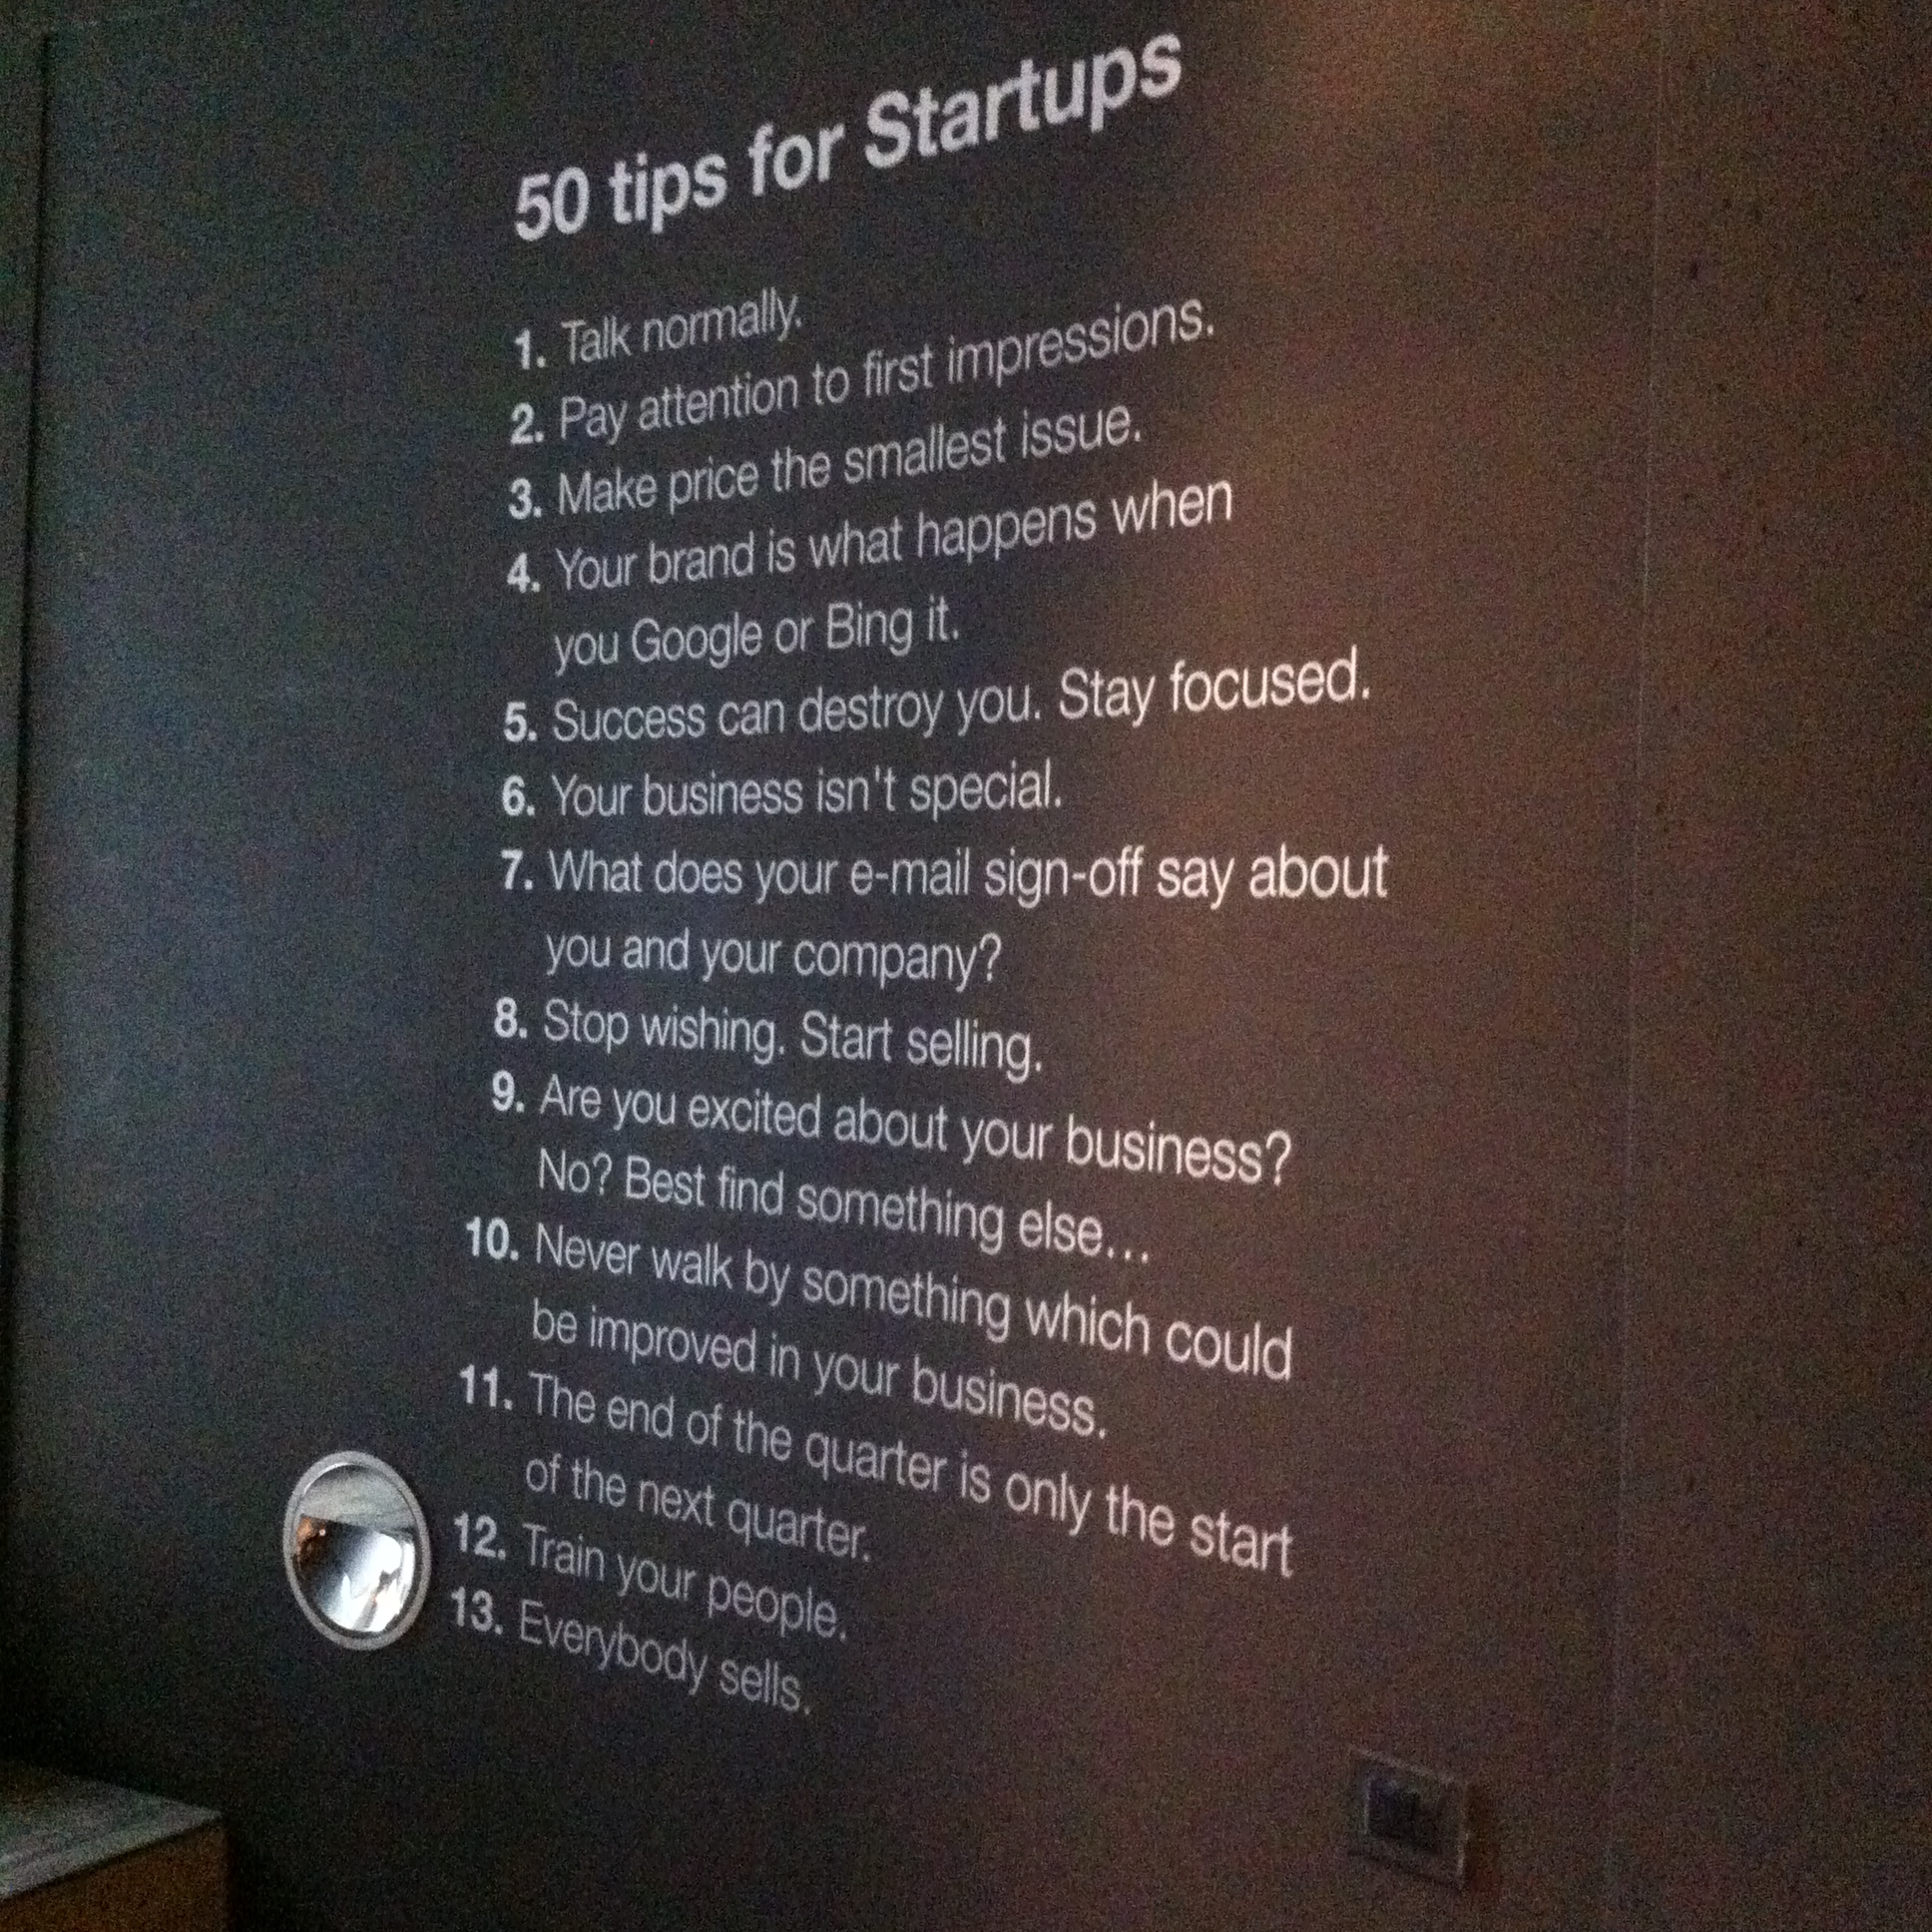 50 tips for startups at the H-farm